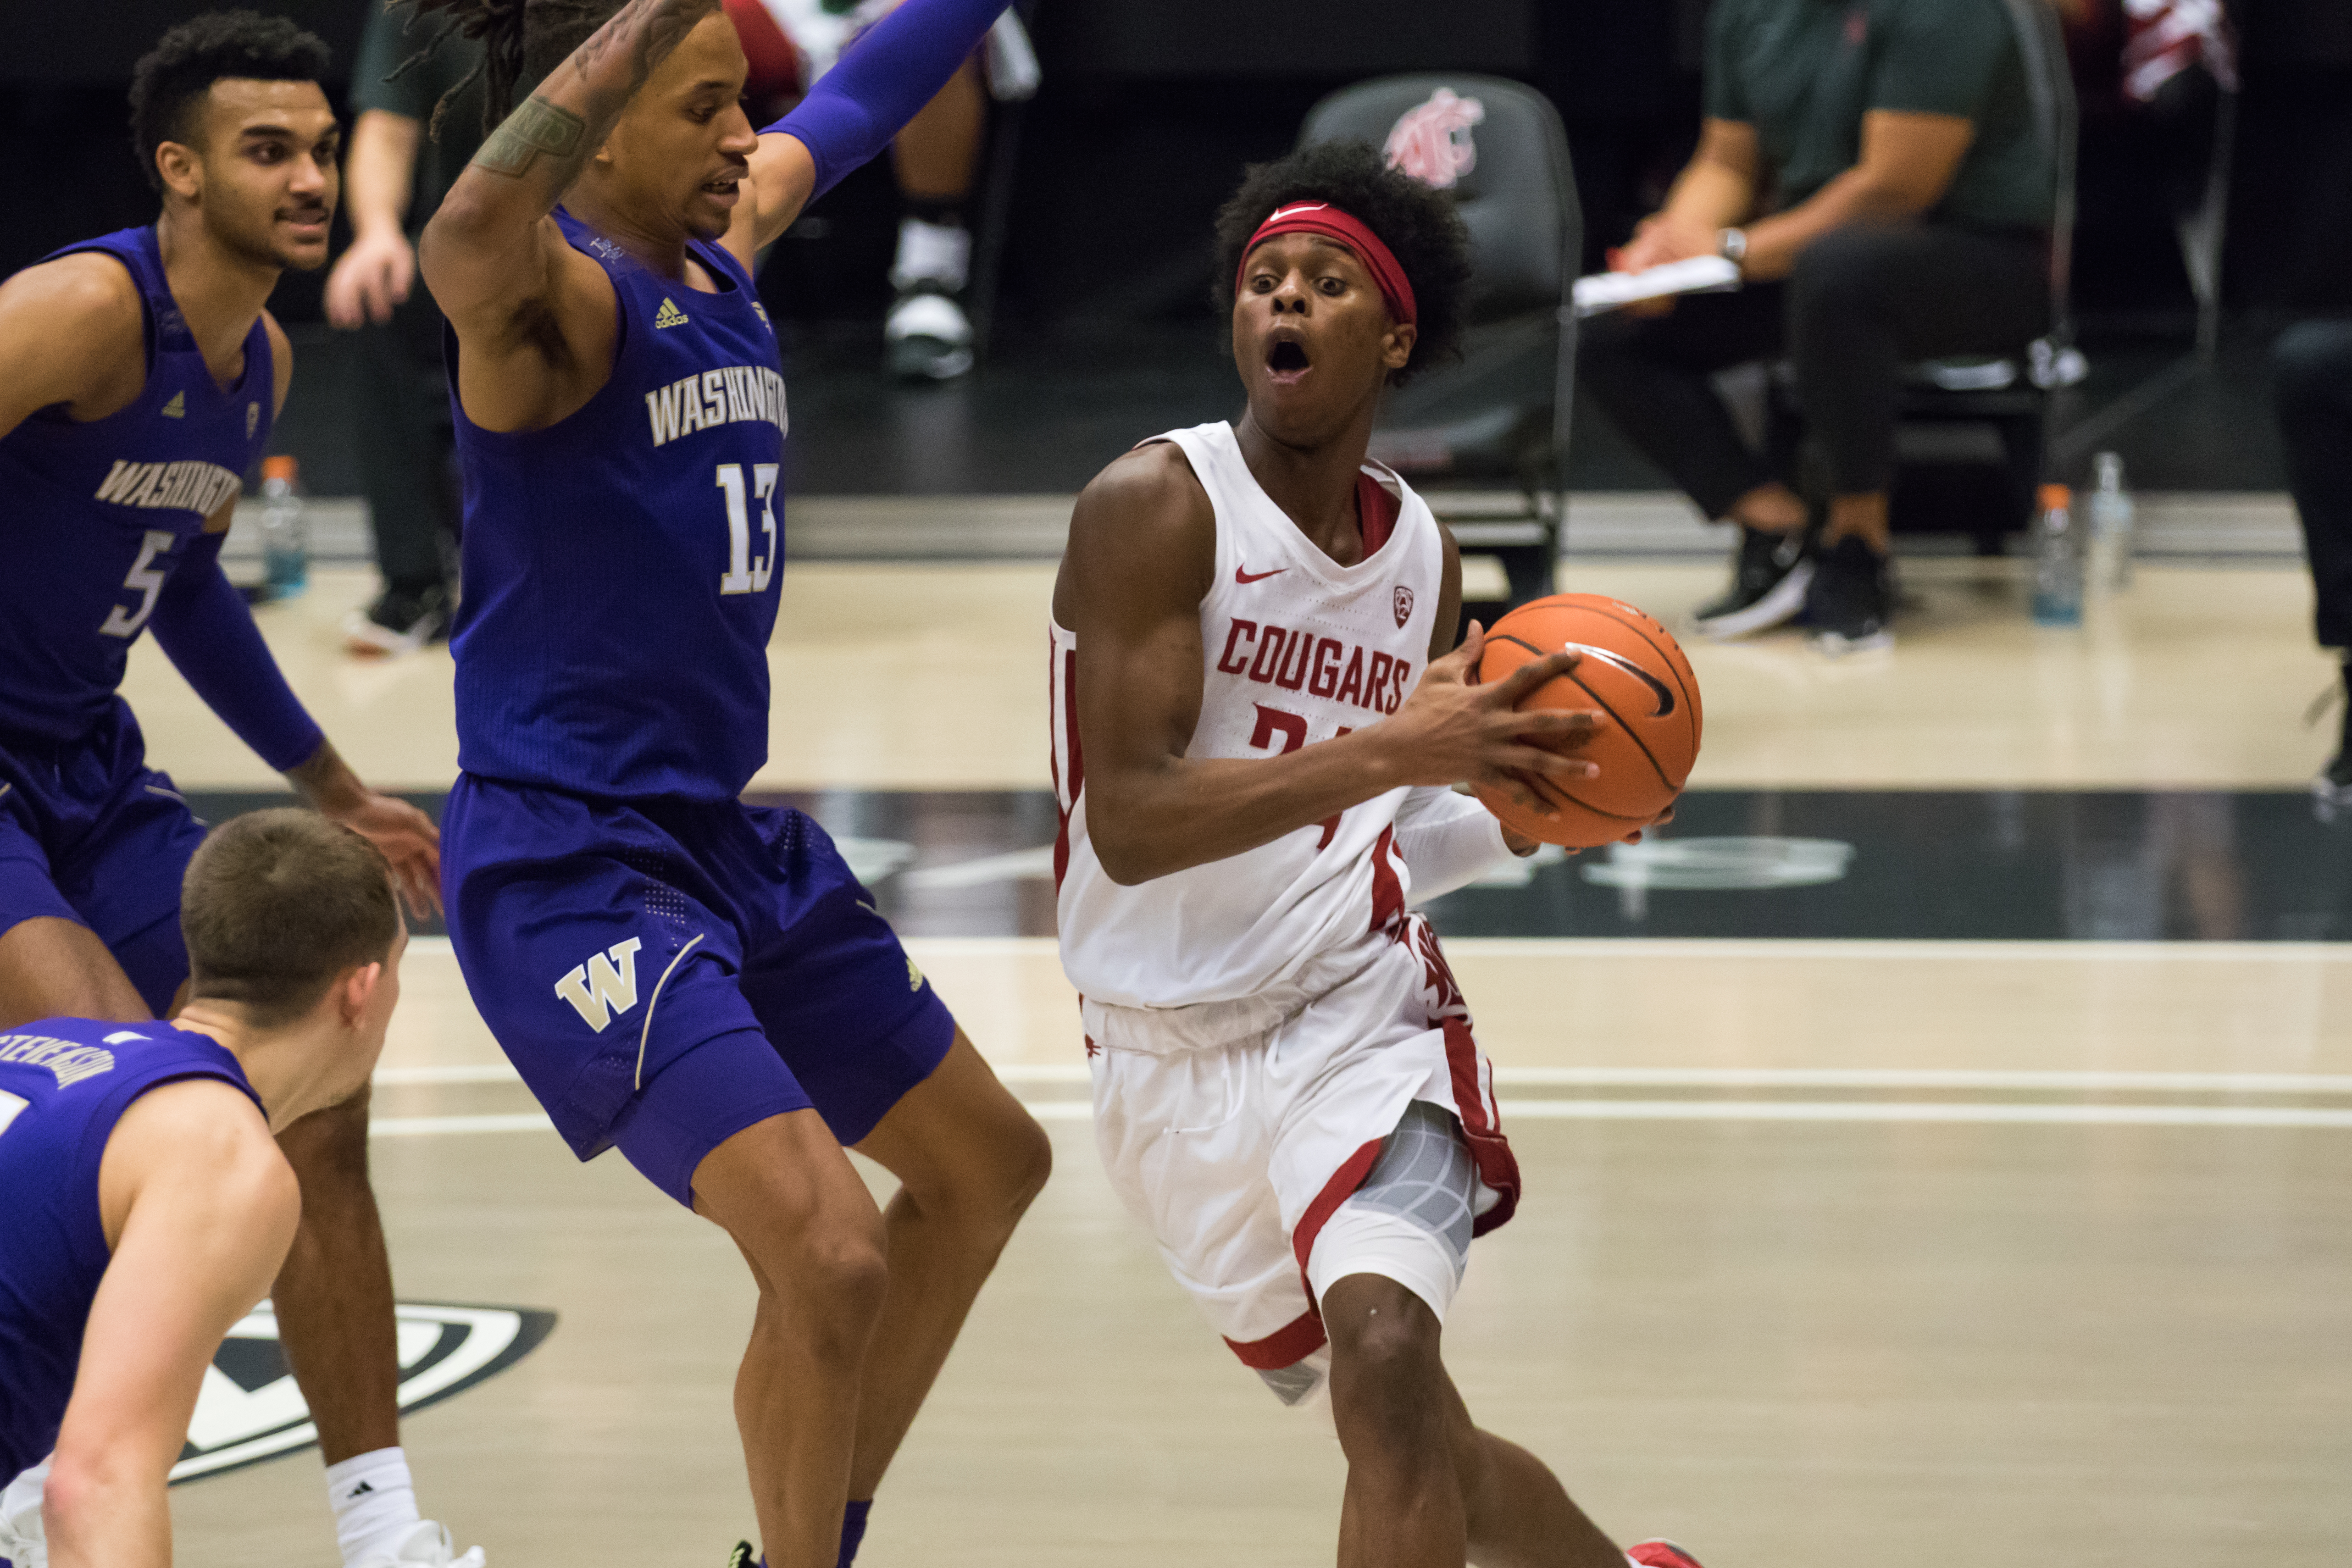 PULLMAN, WA - FEBRUARY 15: Washington State guard Noah Williams (24) drives down the baseline during the second half of a Pac 12 matchup between the Washington Huskies and the Washington State Cougars on February 15, 2021, at Beasley Coliseum in Pullman, WA.